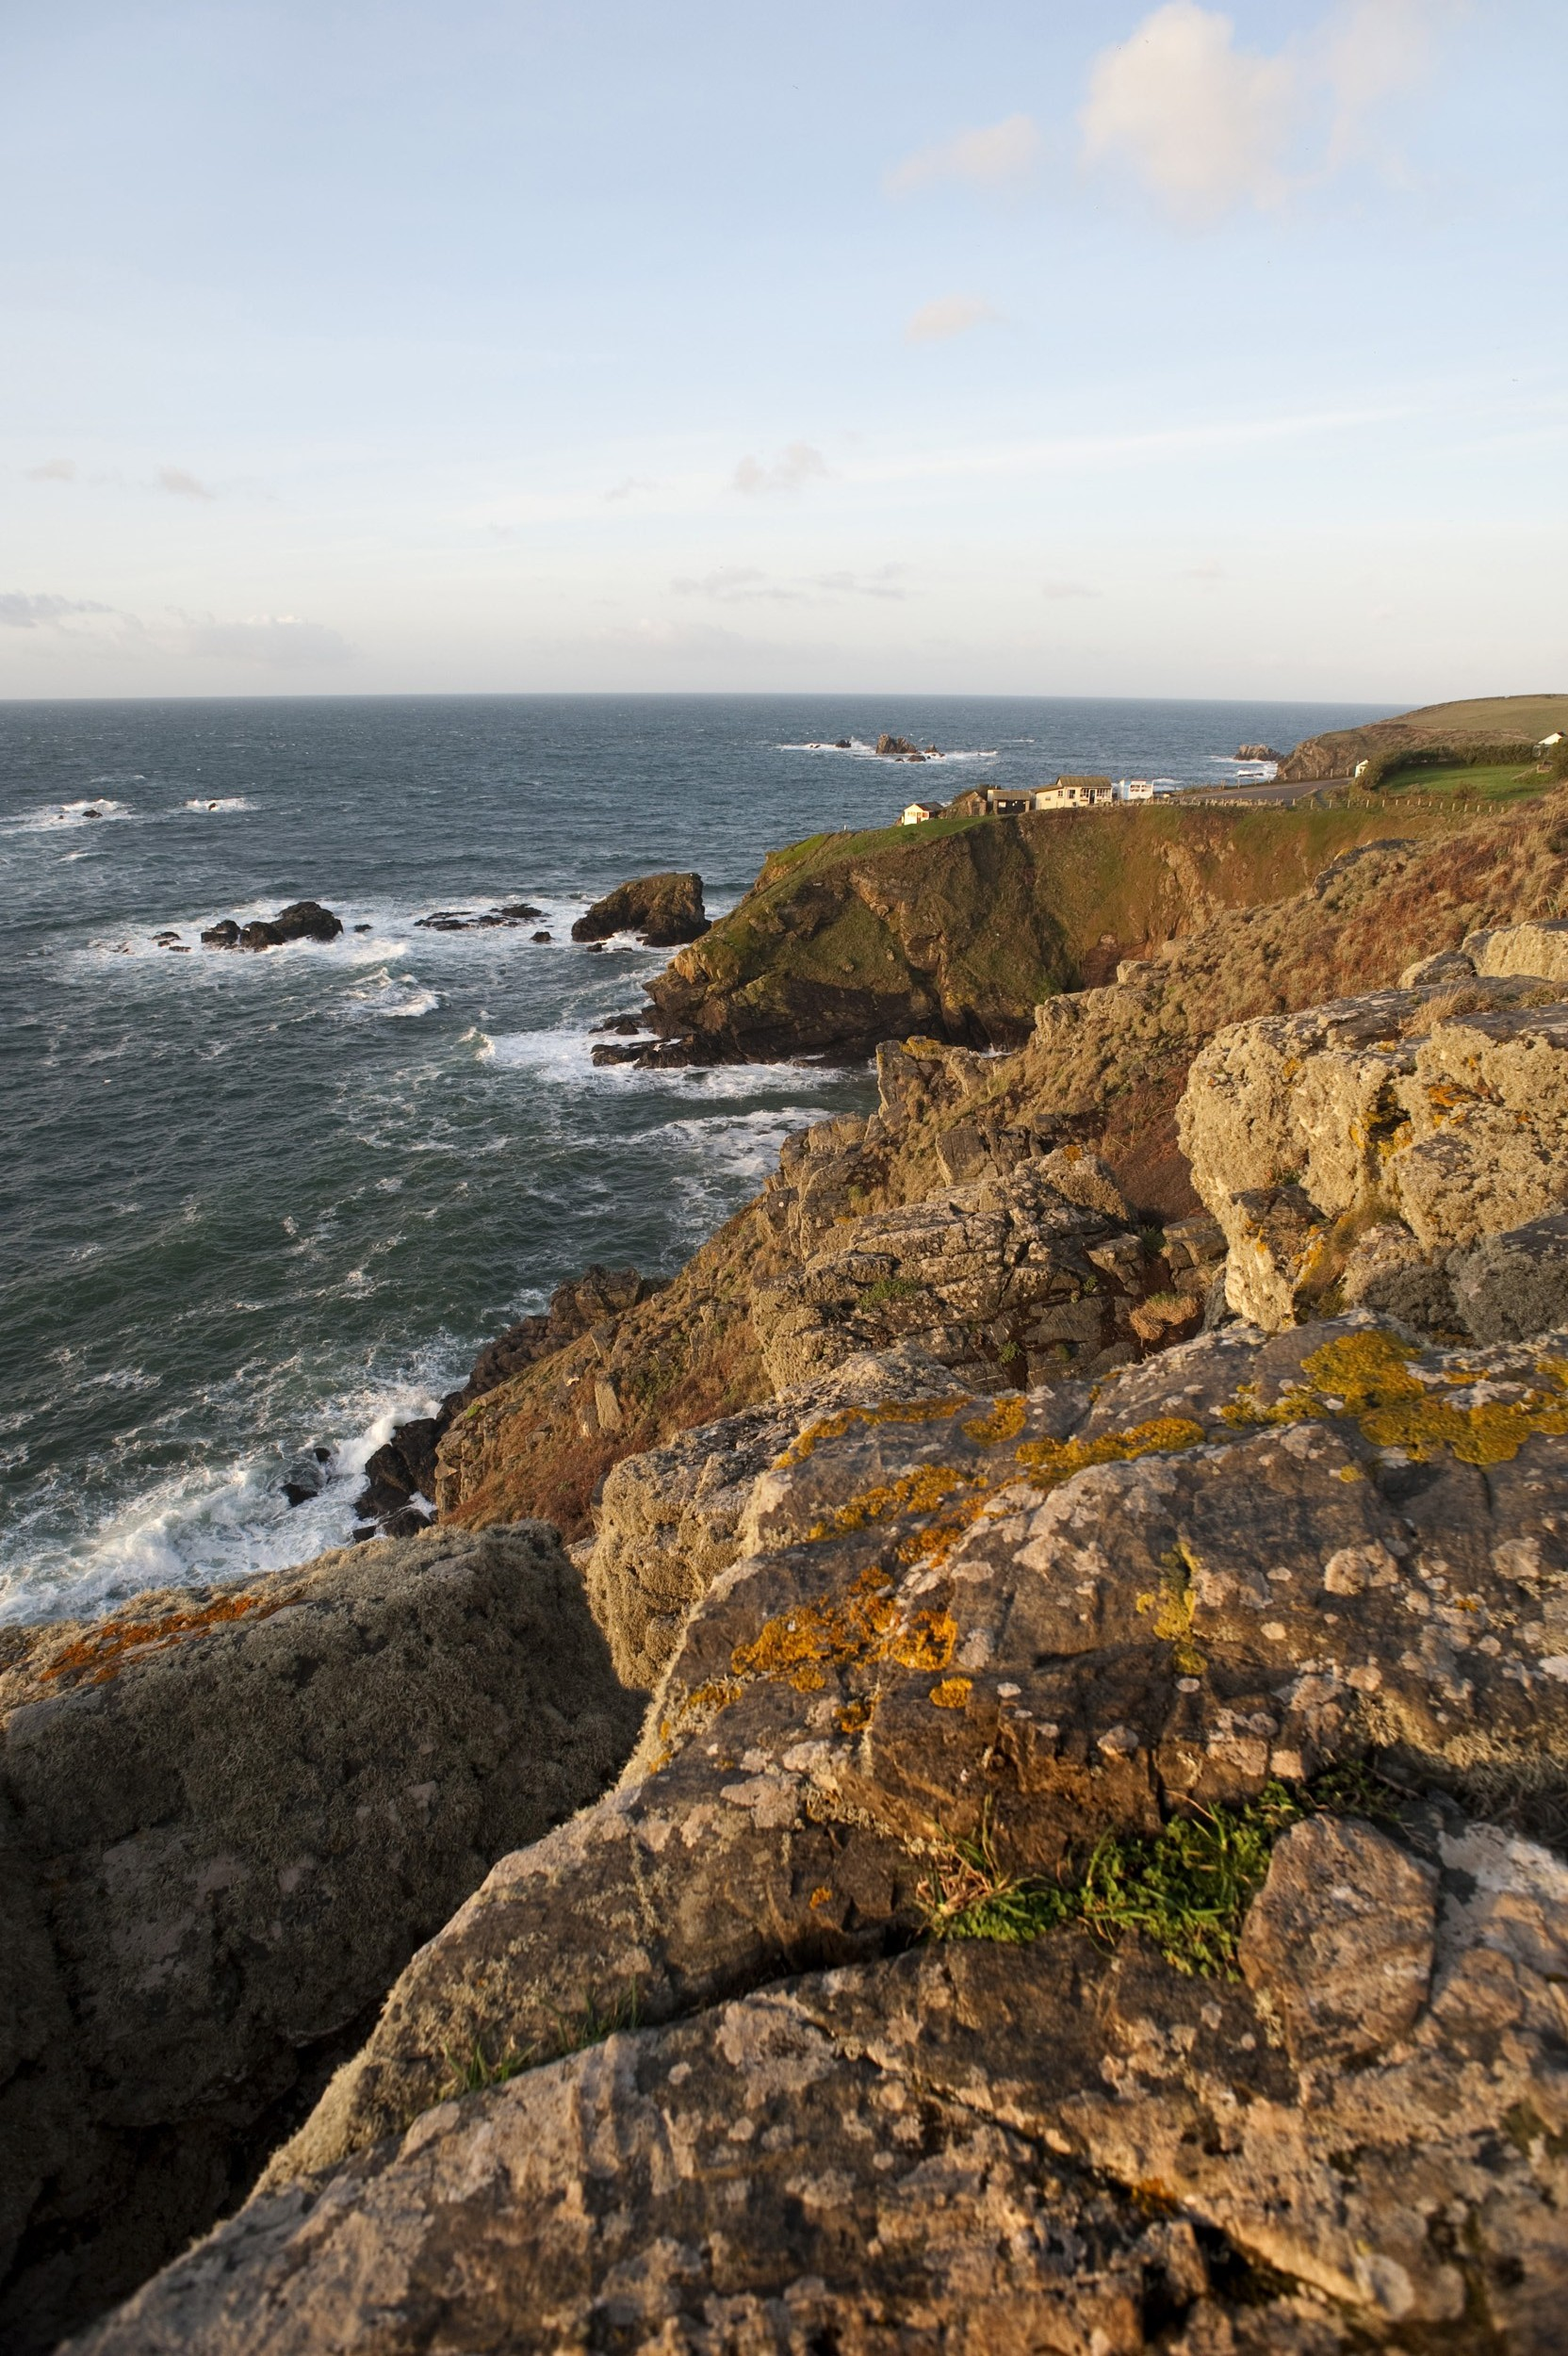 The most southerly point of mainland england, Lizard point, marked of course by a gift shop